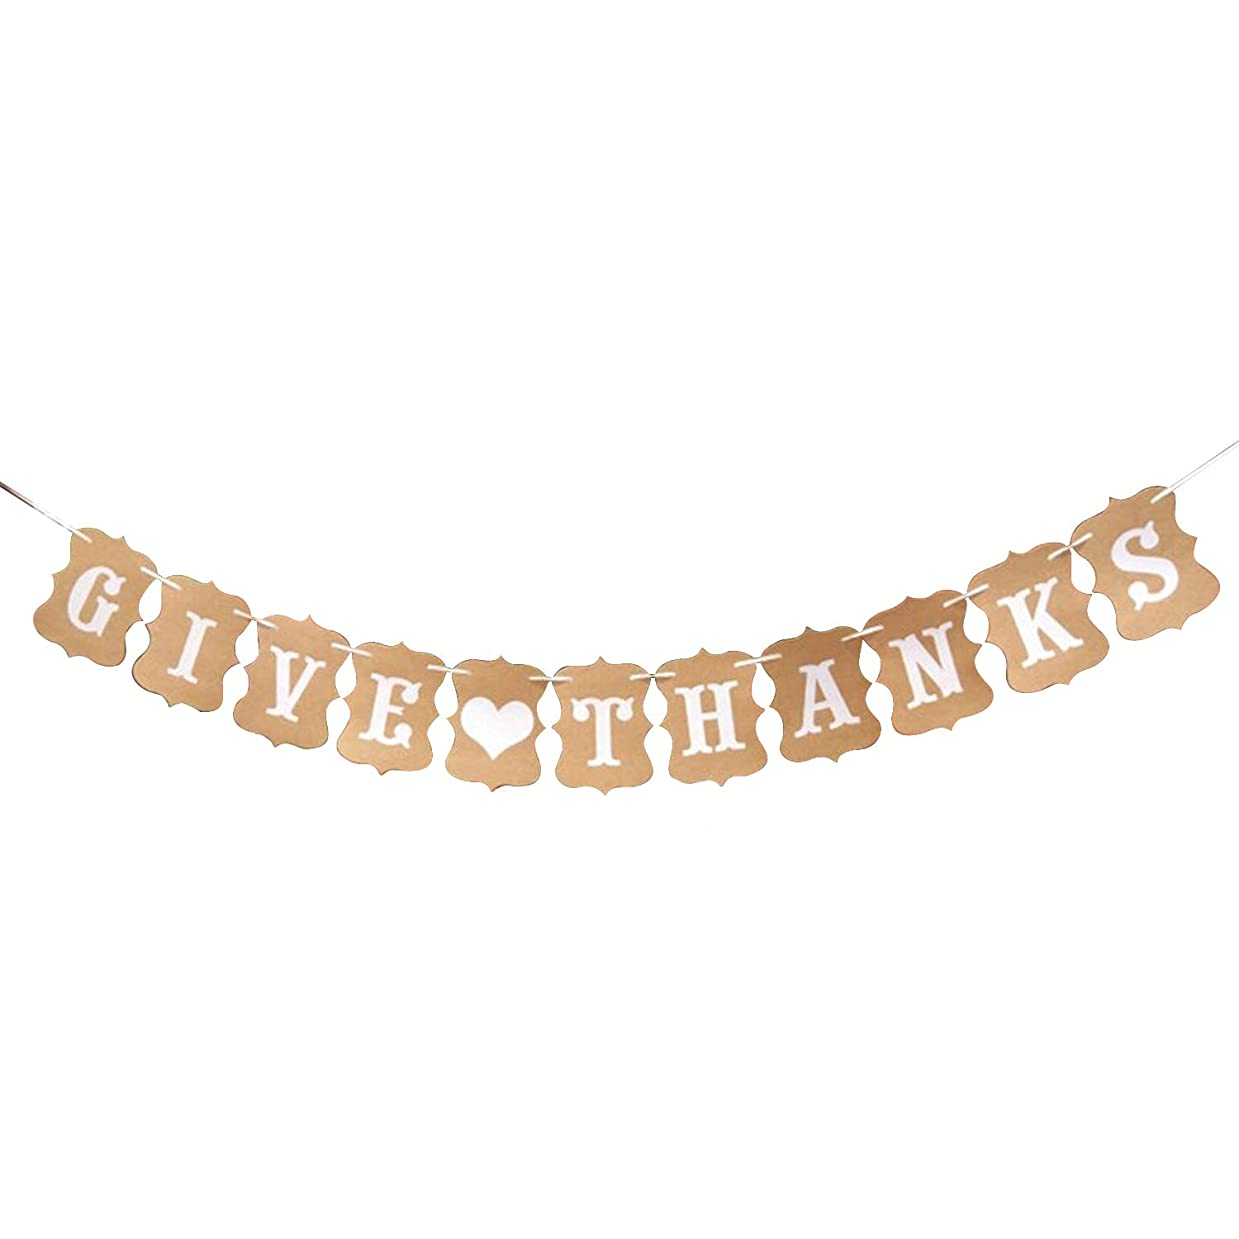 Give Thanks Heart Banner Style – No DIY Required, Sturdy Kraft Paper   Great for Thanksgiving Day Décor Supplies, Vintage Retro Birthday Backdrop, Baby Bridal Shower, Home Office Accessories, Outdoor